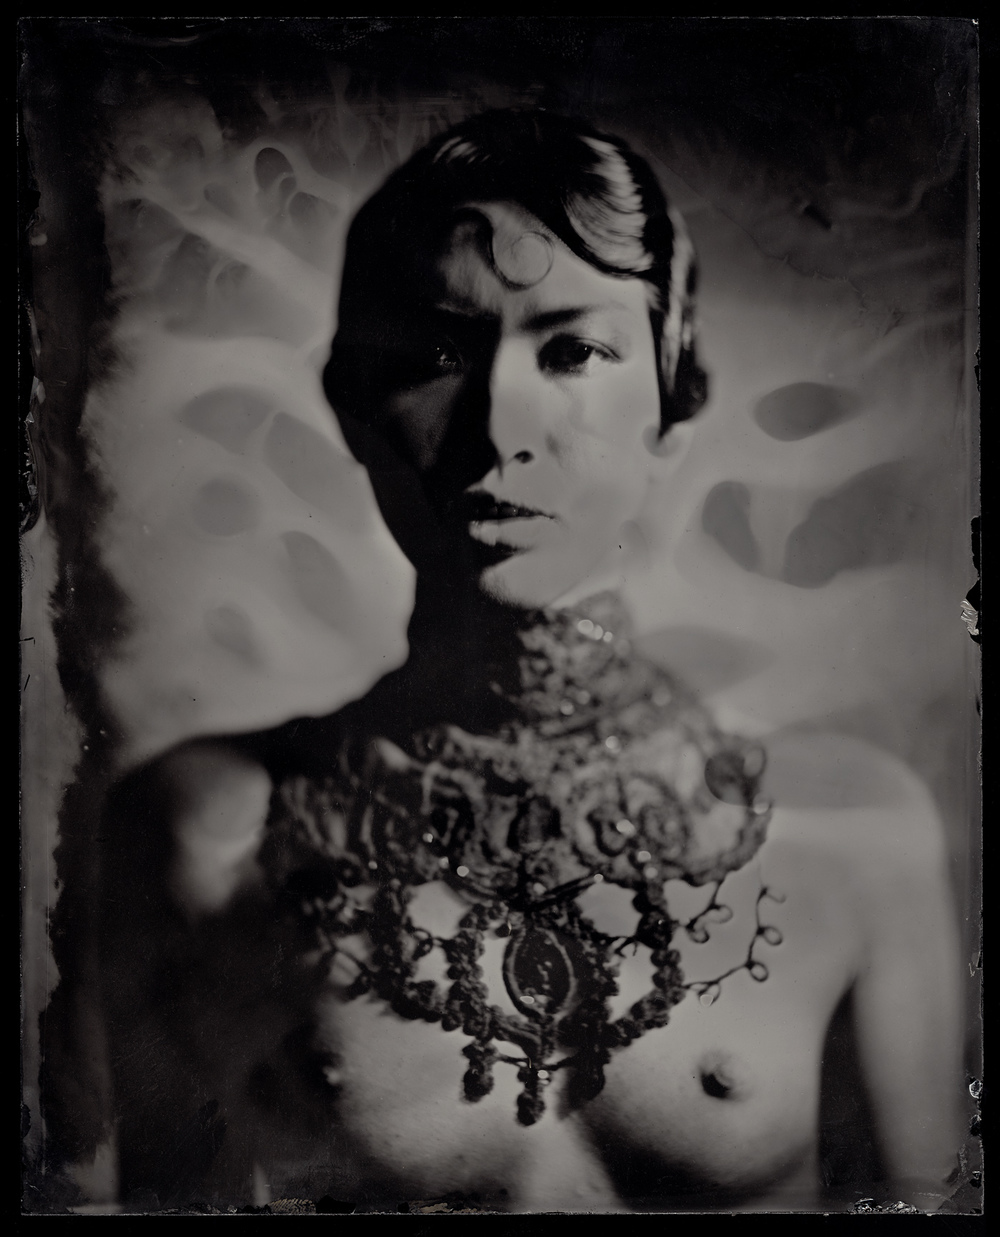 photographer-james-weber-wetplate-collodion-13418.jpg